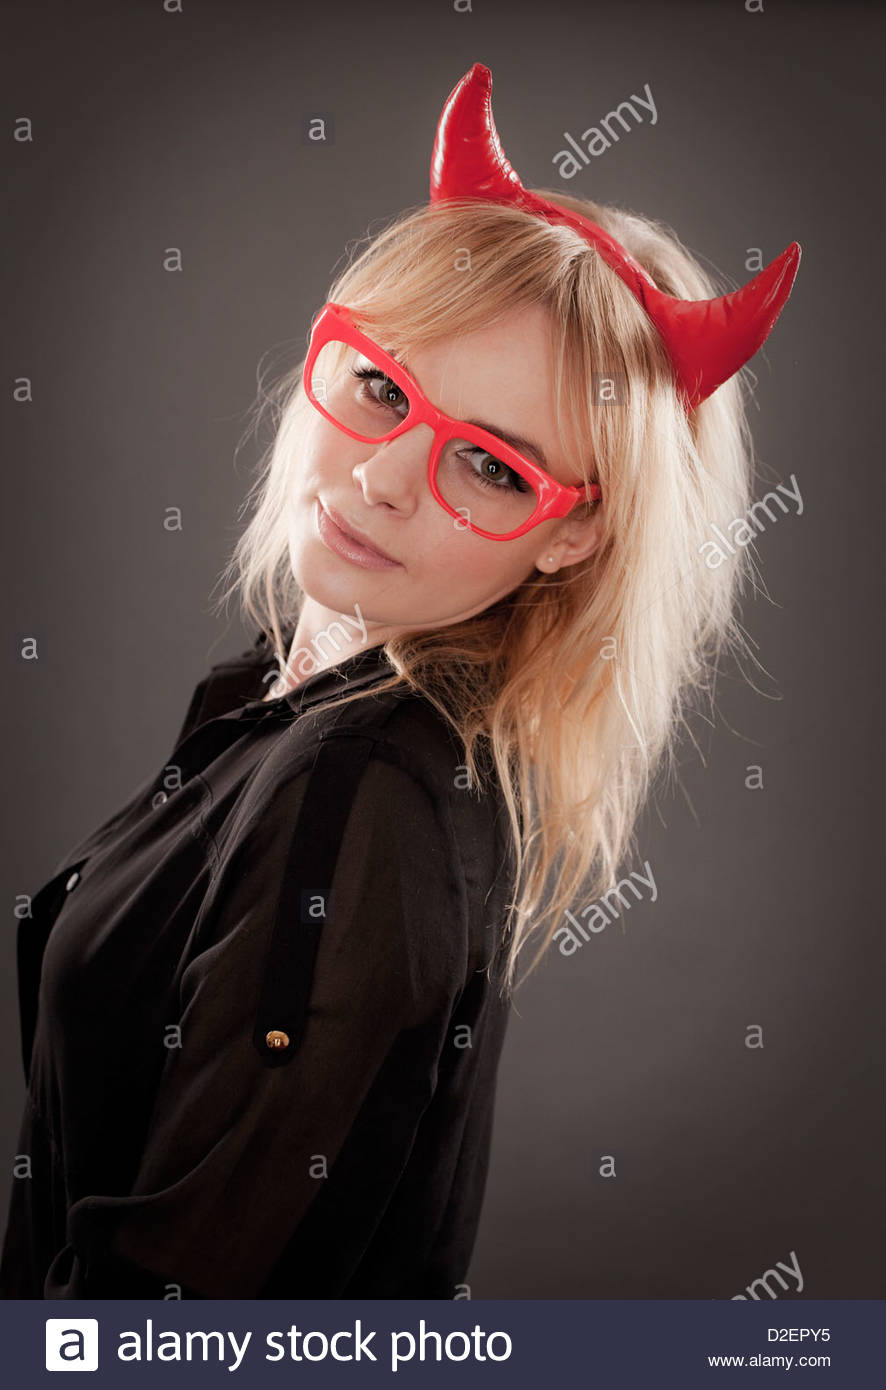 Young woman wearing red glasses and devil horns, studio portrait - Stock Image